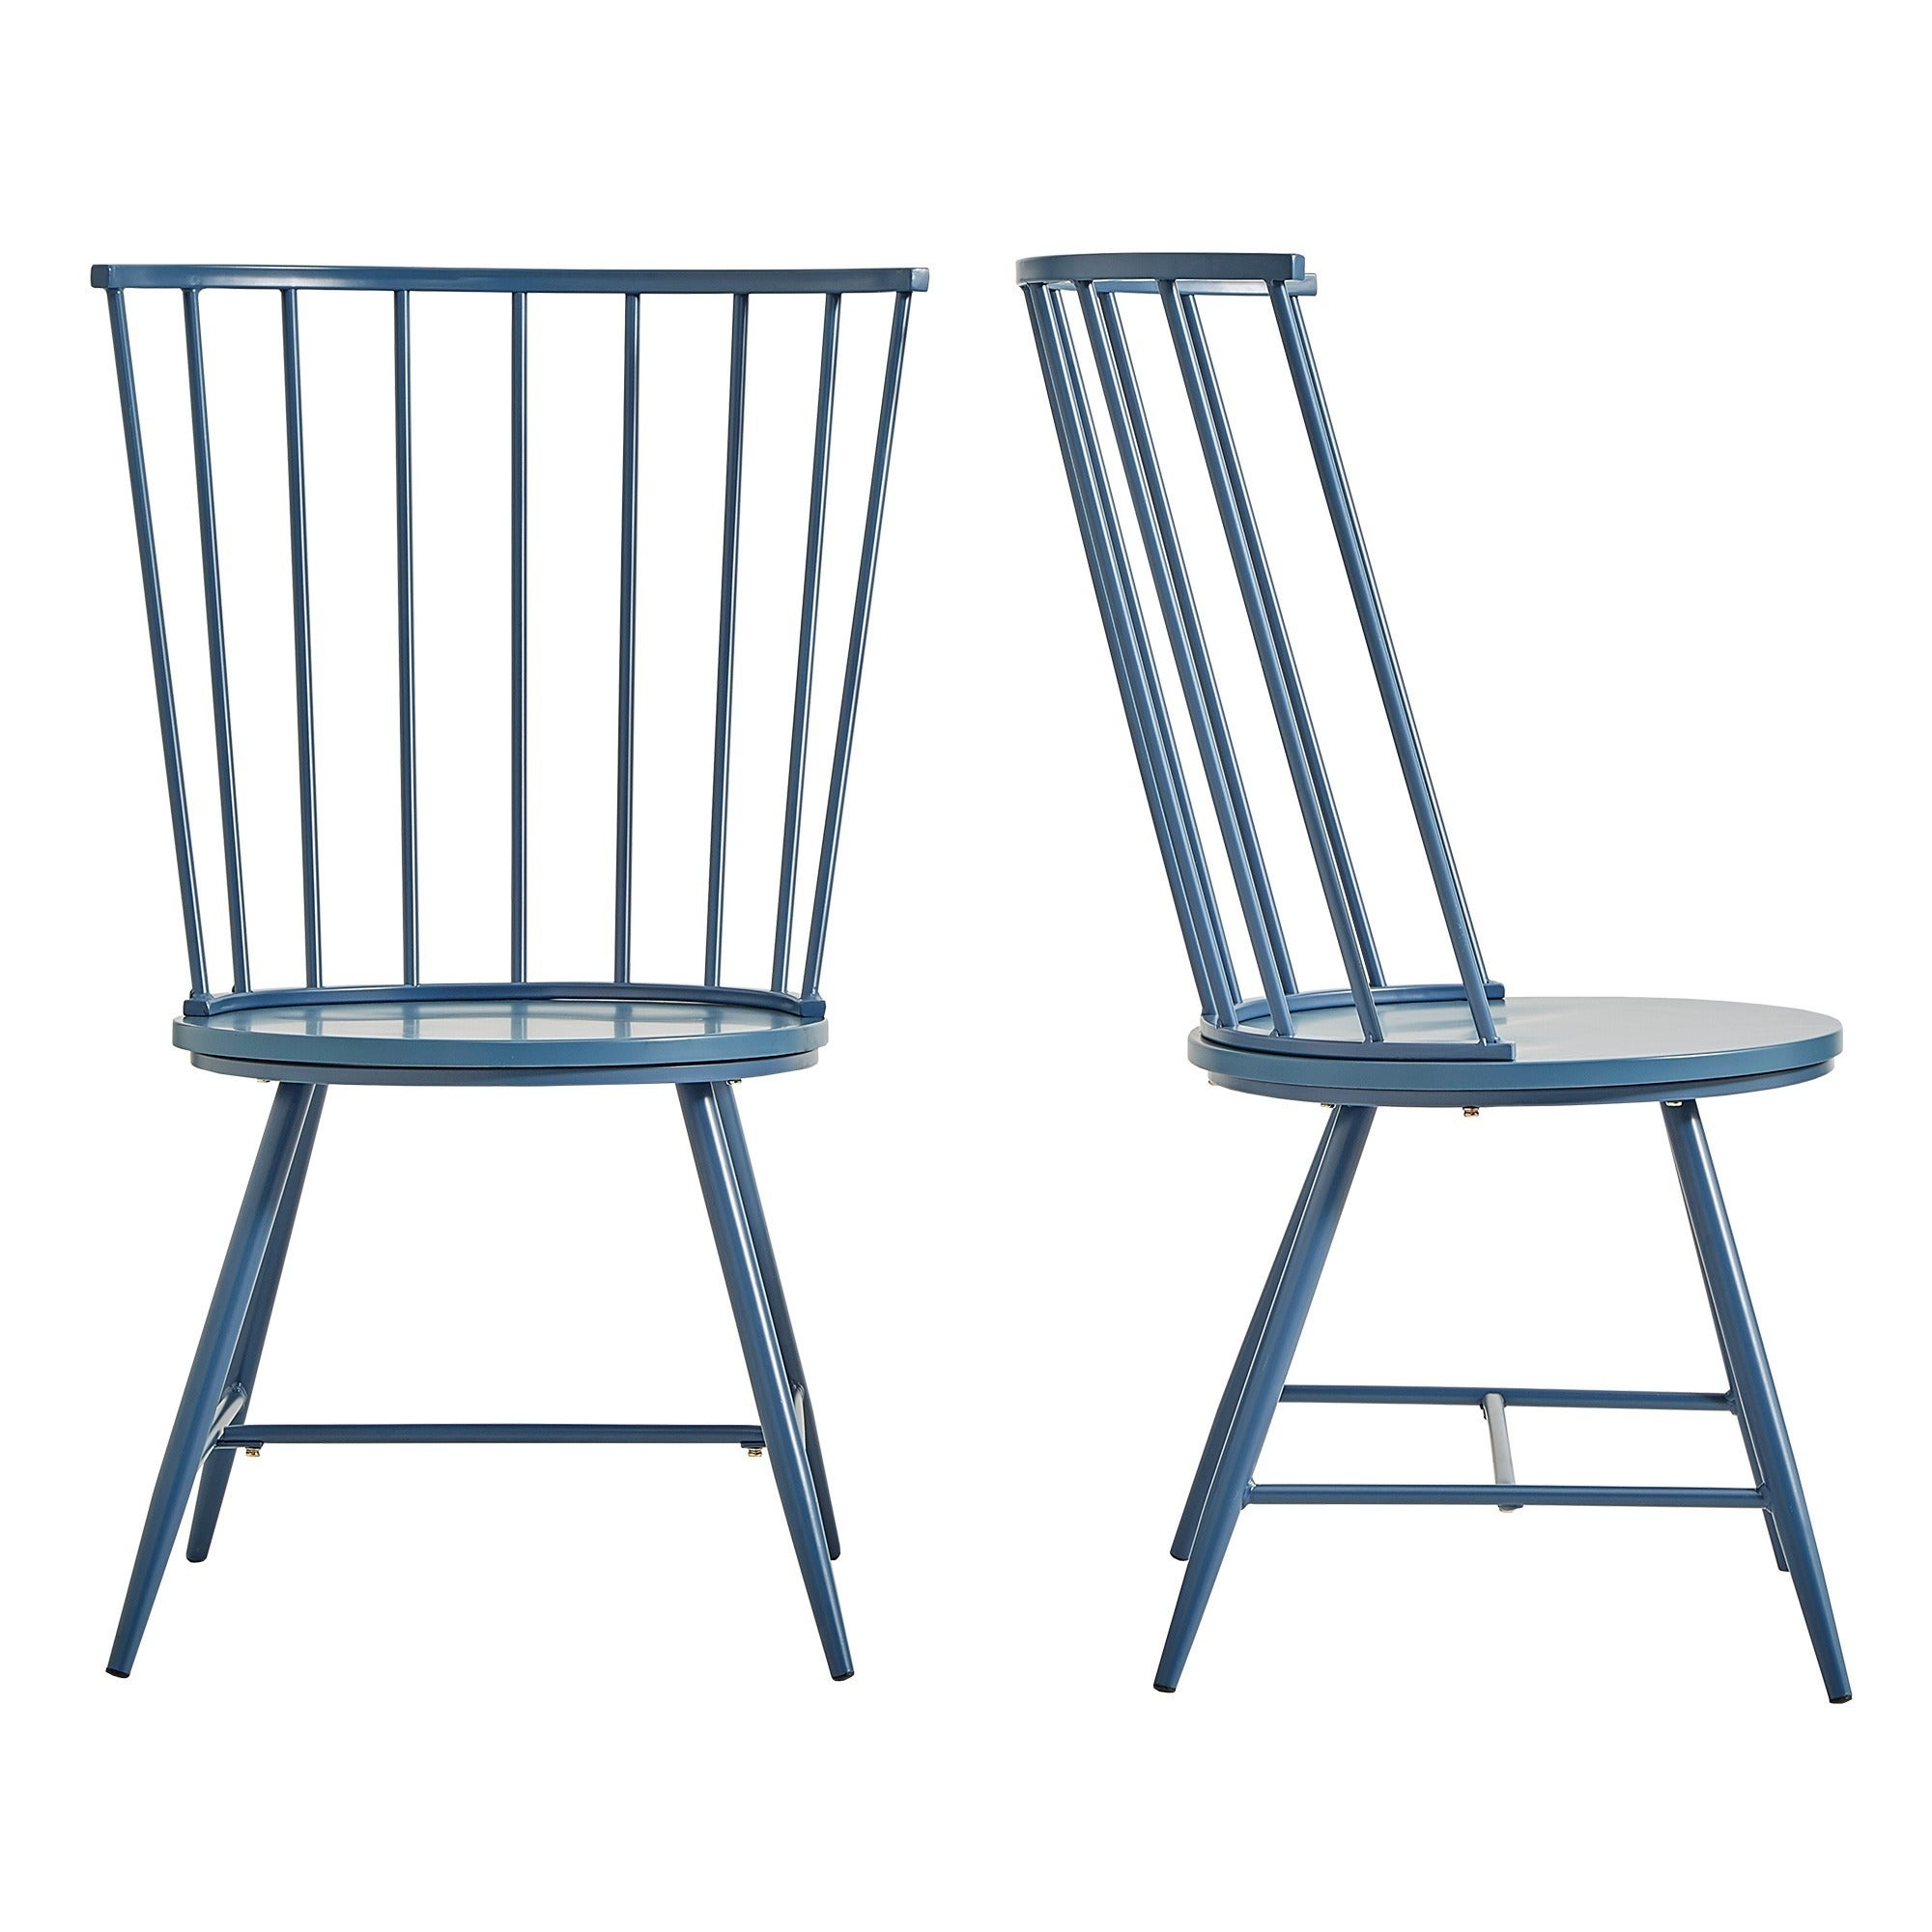 Truman High Back Windsor Clic Dining Chair Set Of 2 By Inspire Q Modern On Free Shipping Today 9620960